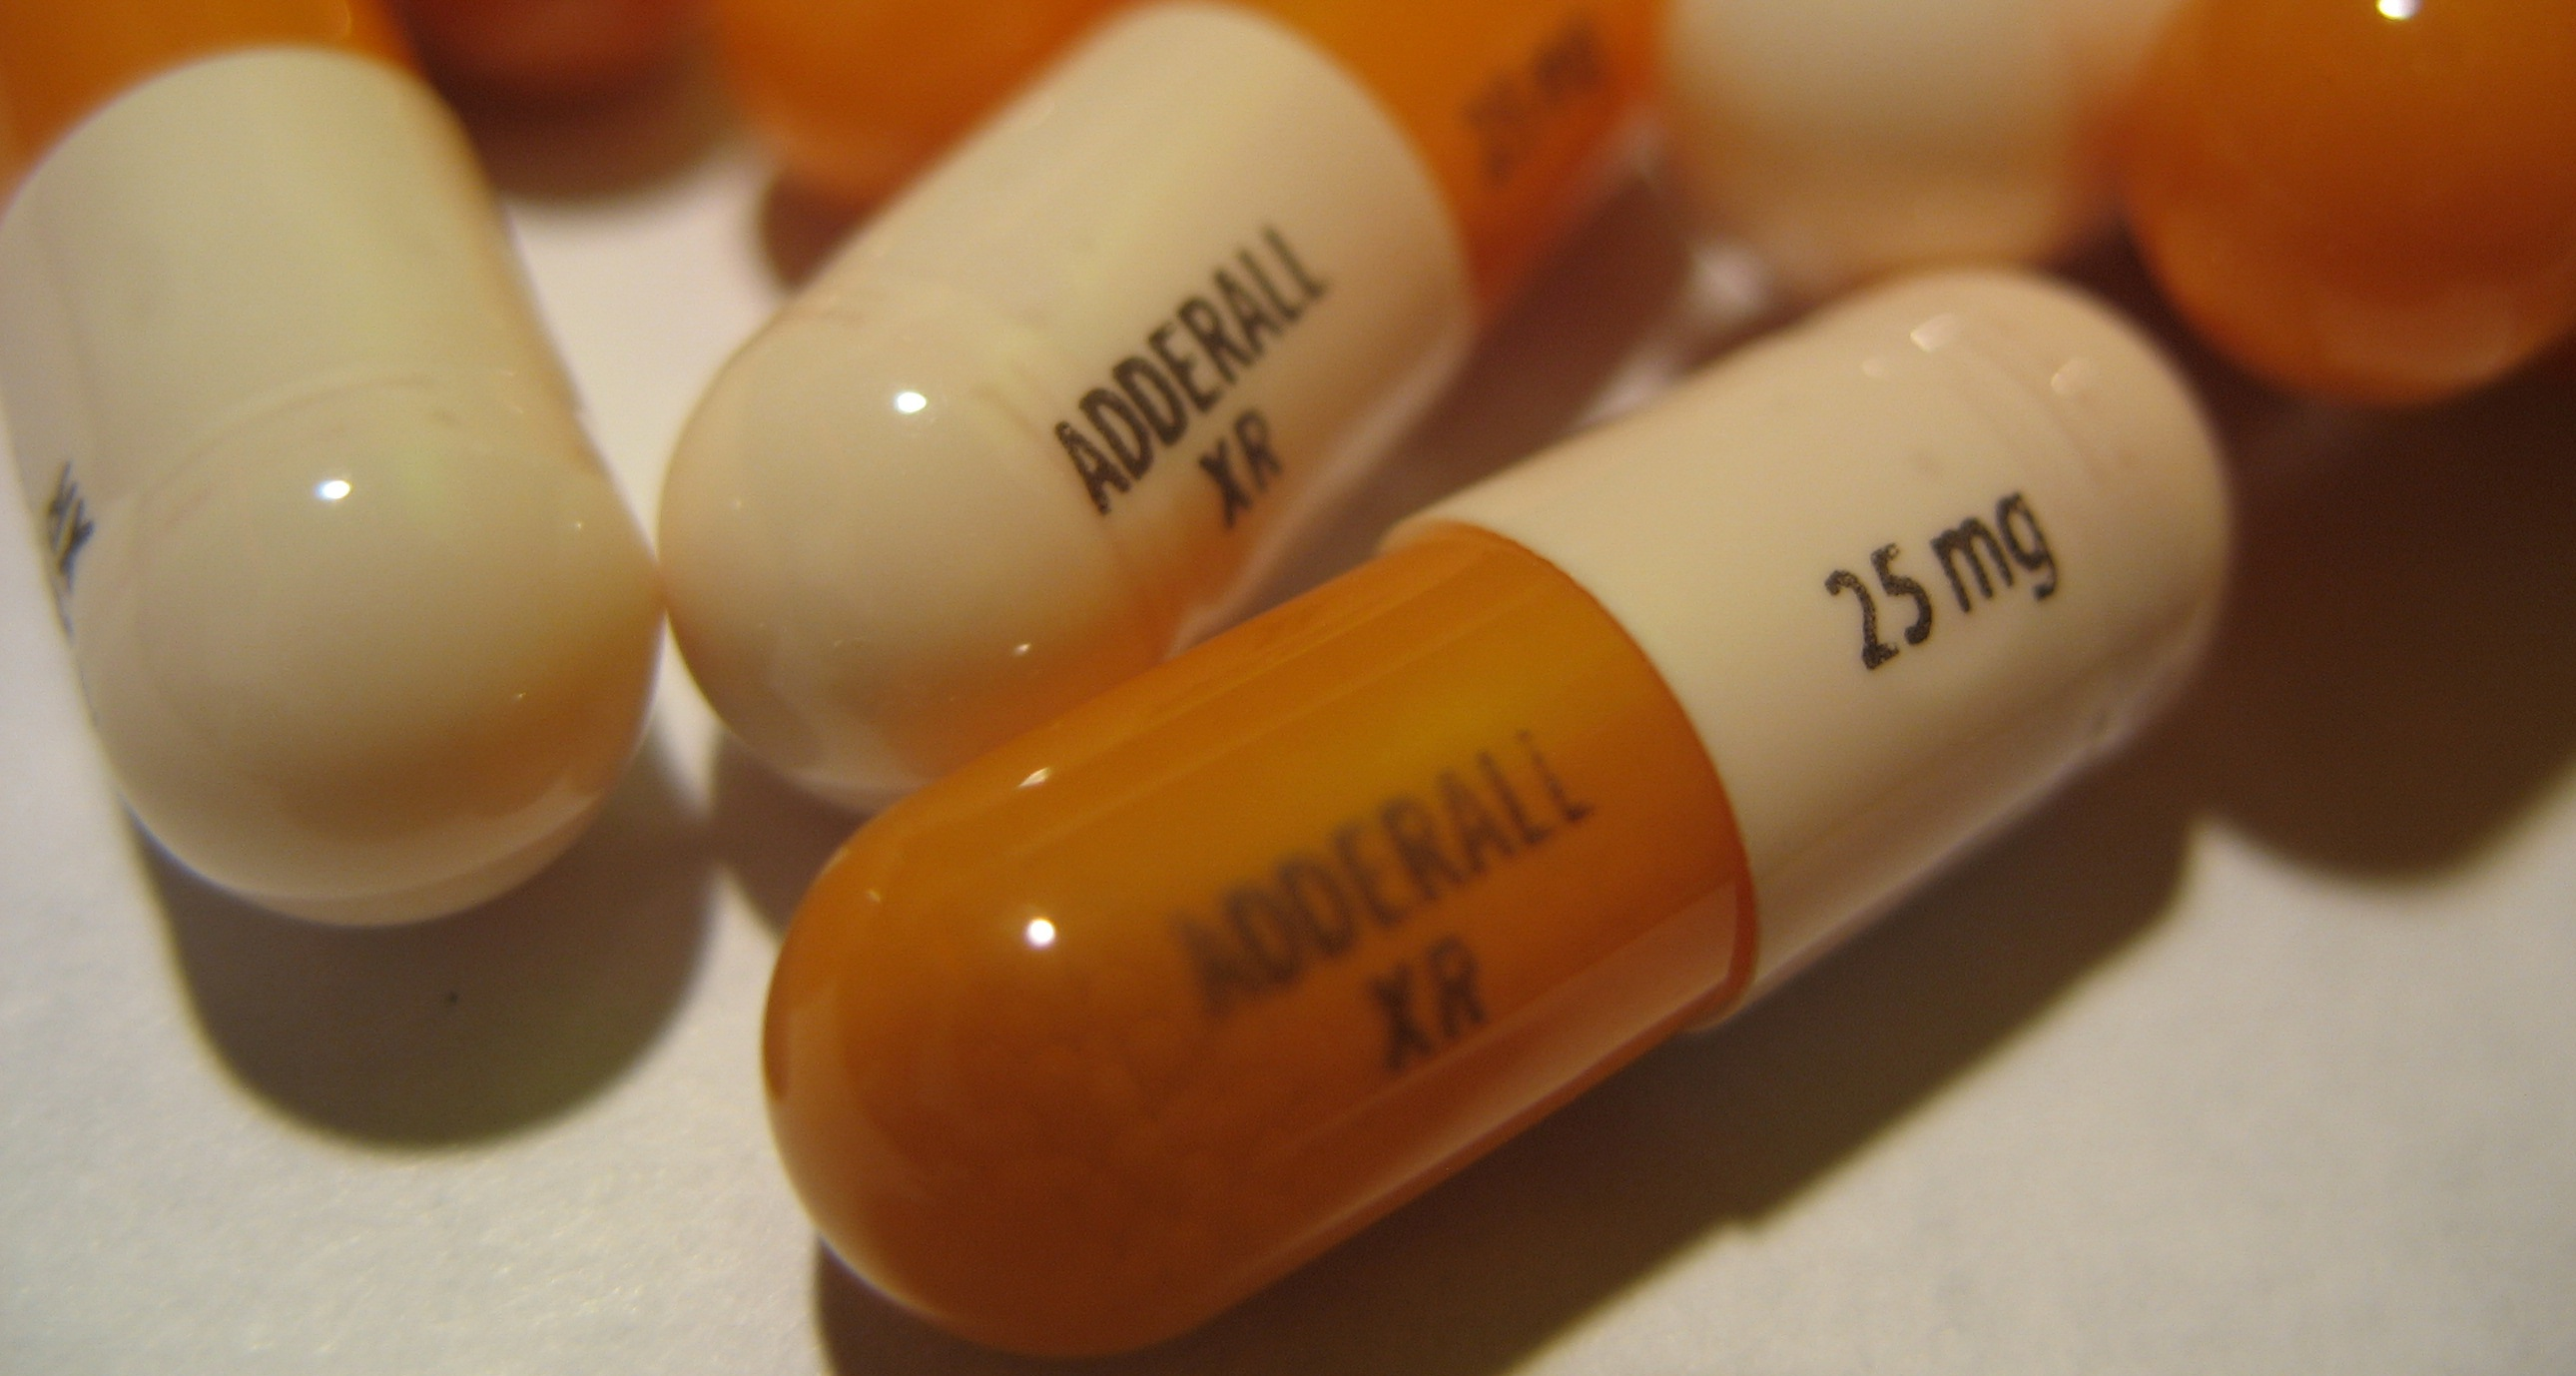 effects of adderall Adderall (amphetamine, dextroamphetamine) side effects read about common and serious side effects of adderall visit cvscom for more details.